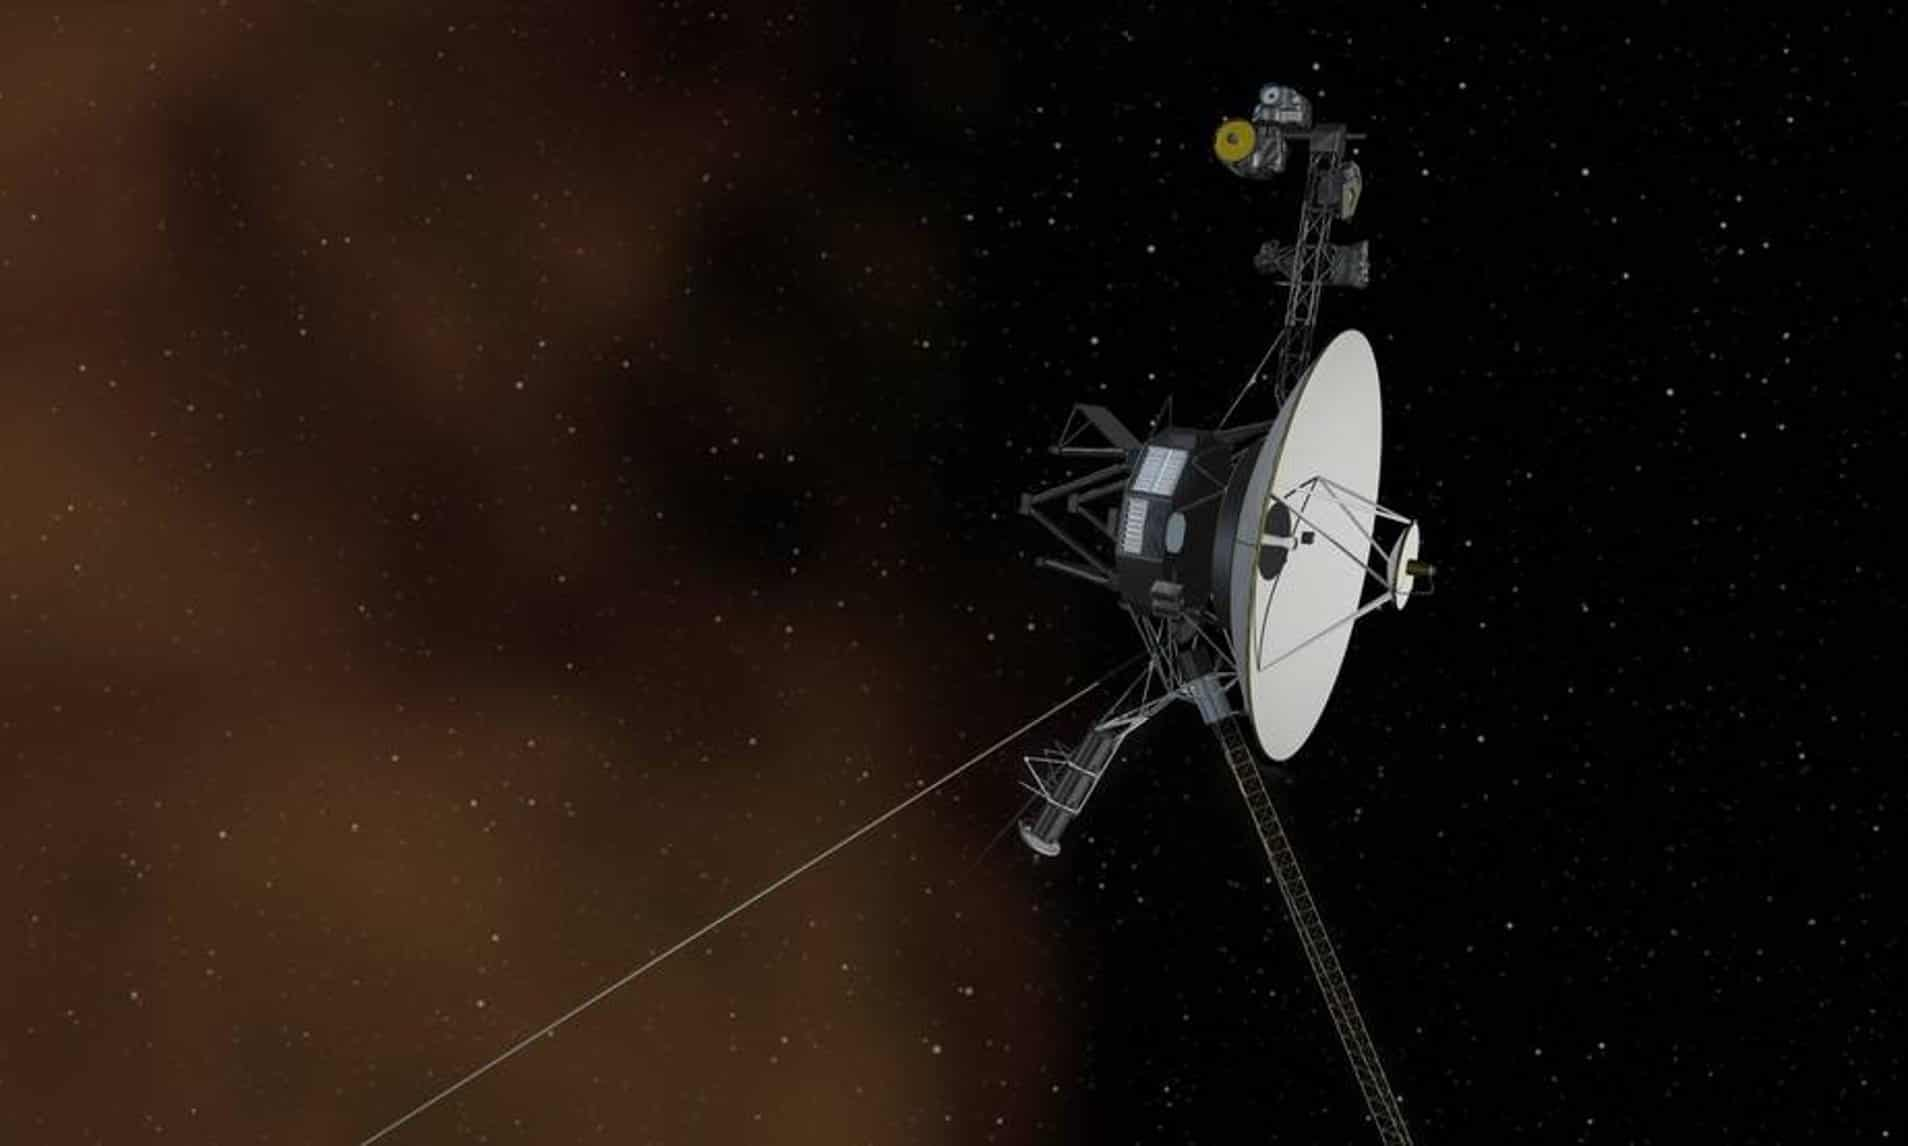 NASA probe performs first interstellar parallax experiment